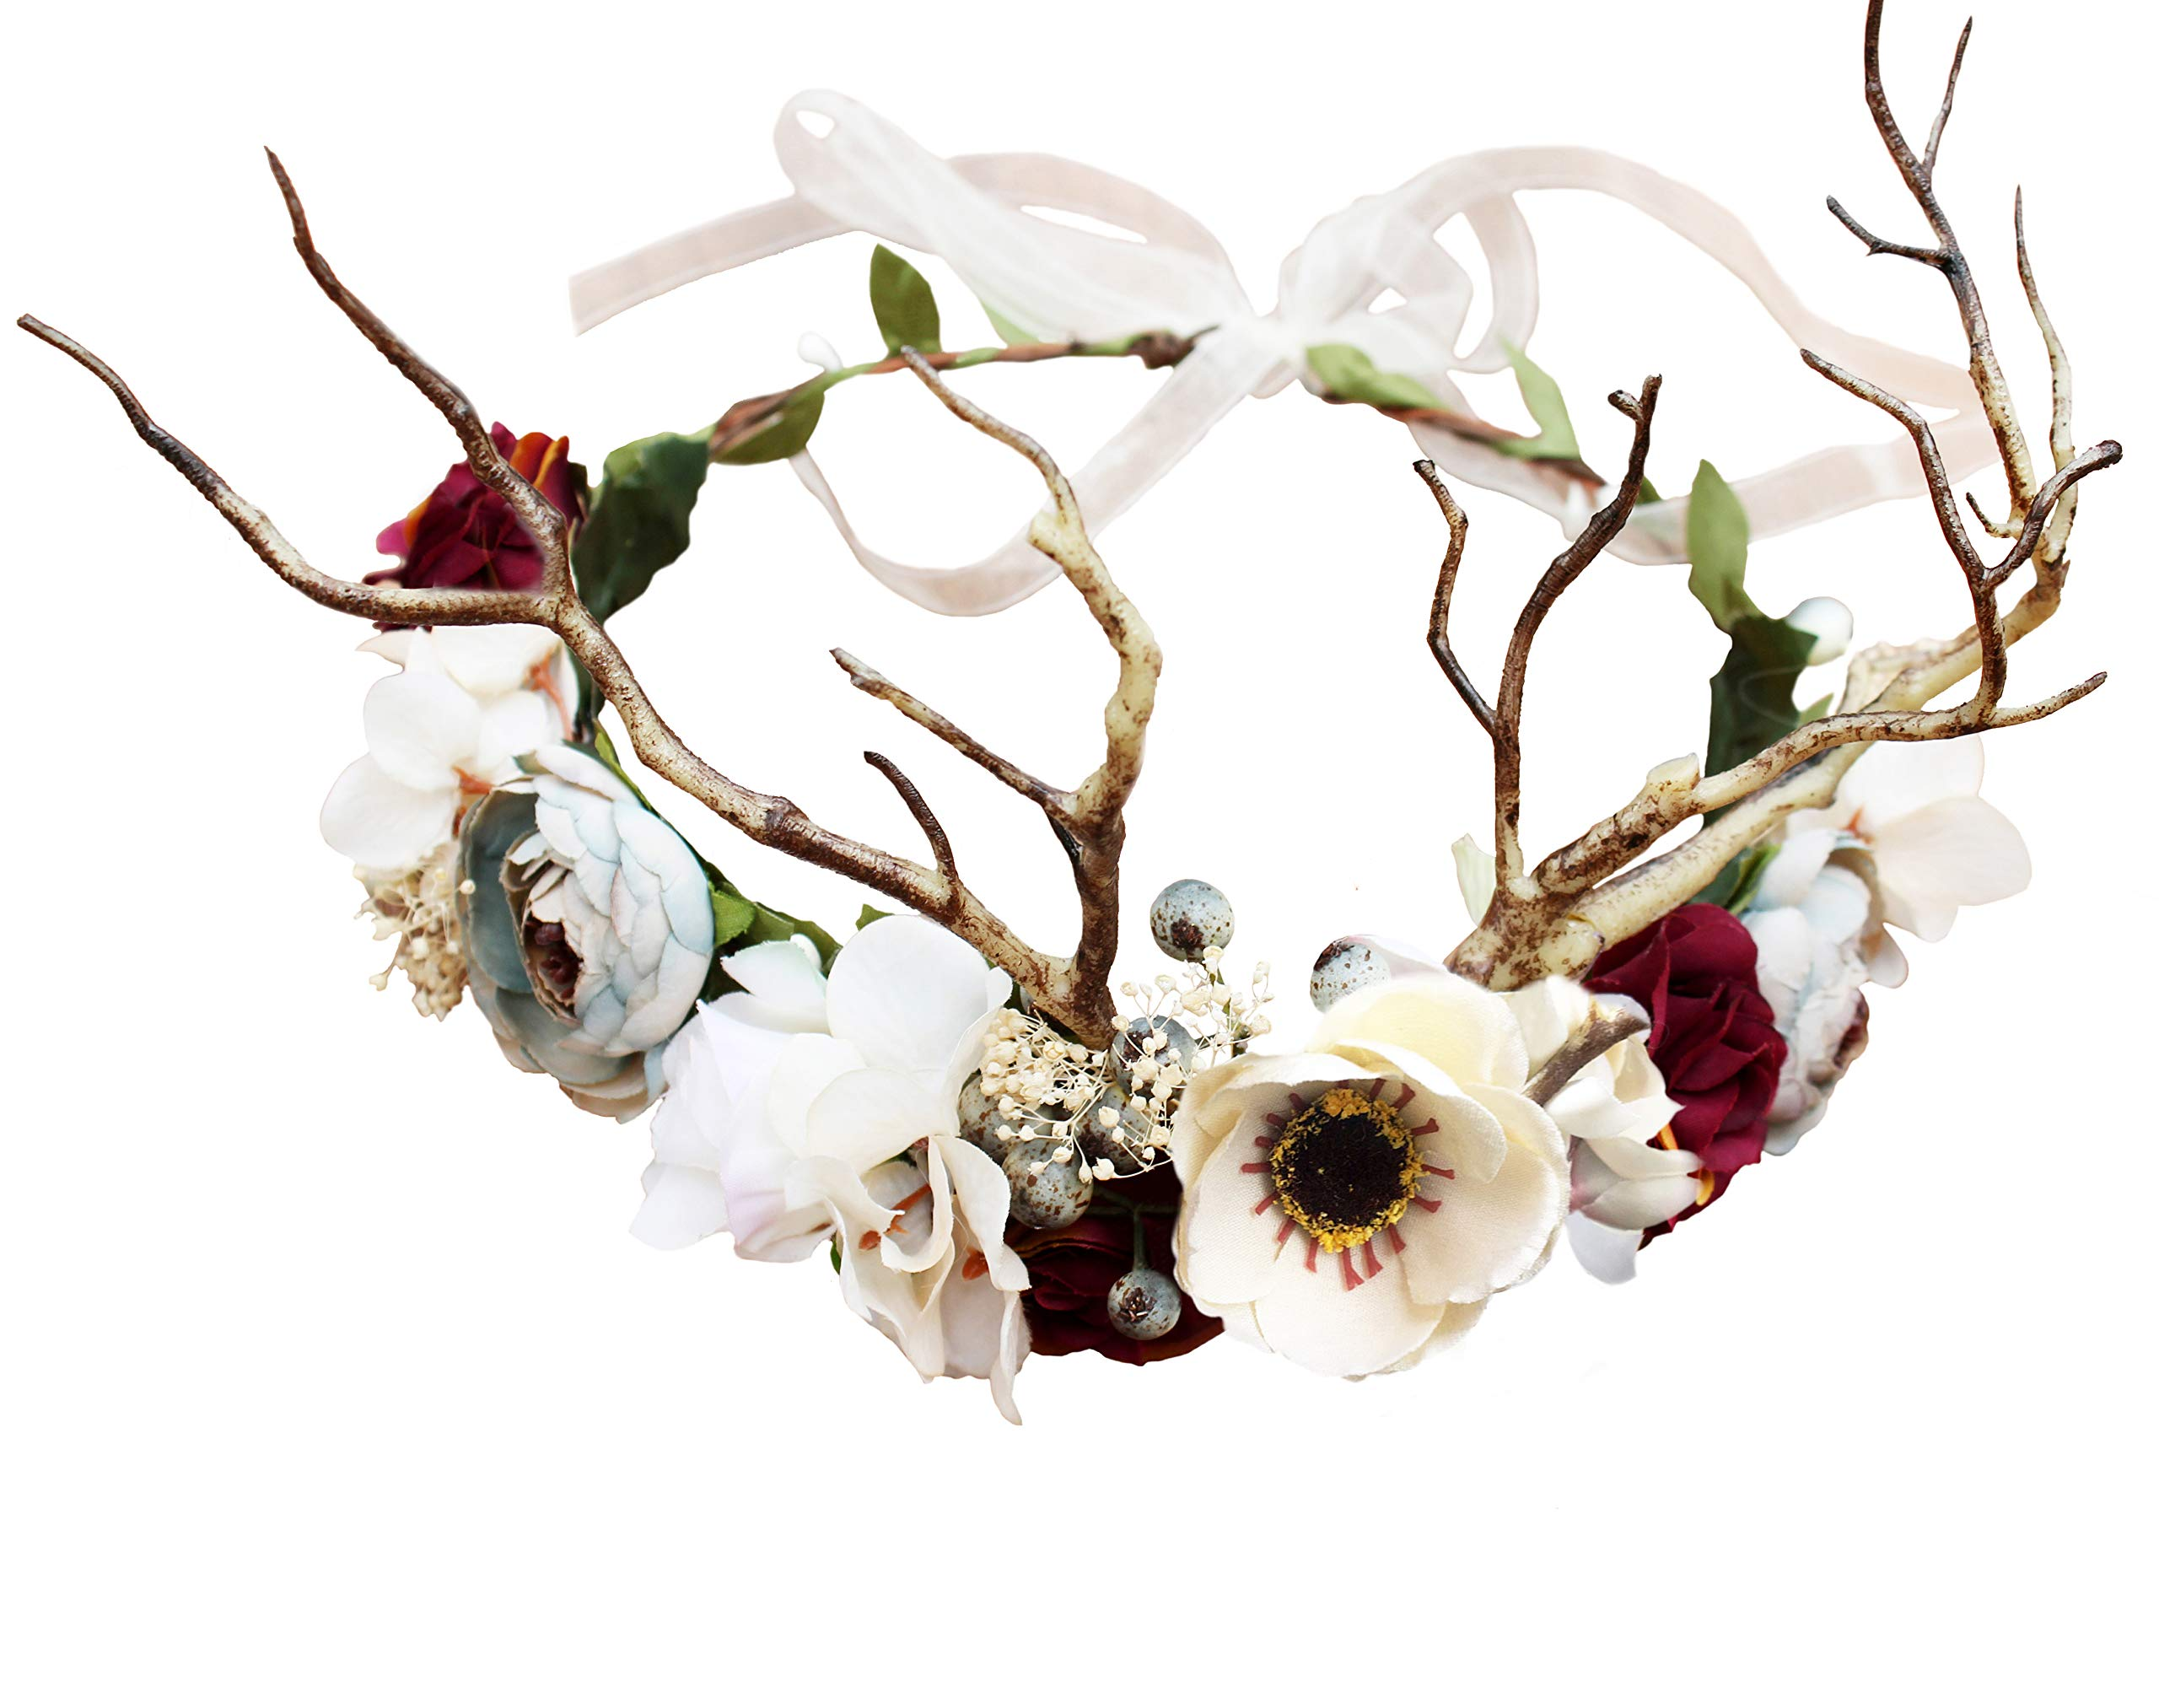 Vivivalue Deer Flower Crown Boho Flower Headband Hair Wreath Floral Headpiece Halo with Ribbon Wedding Party Festival Photos